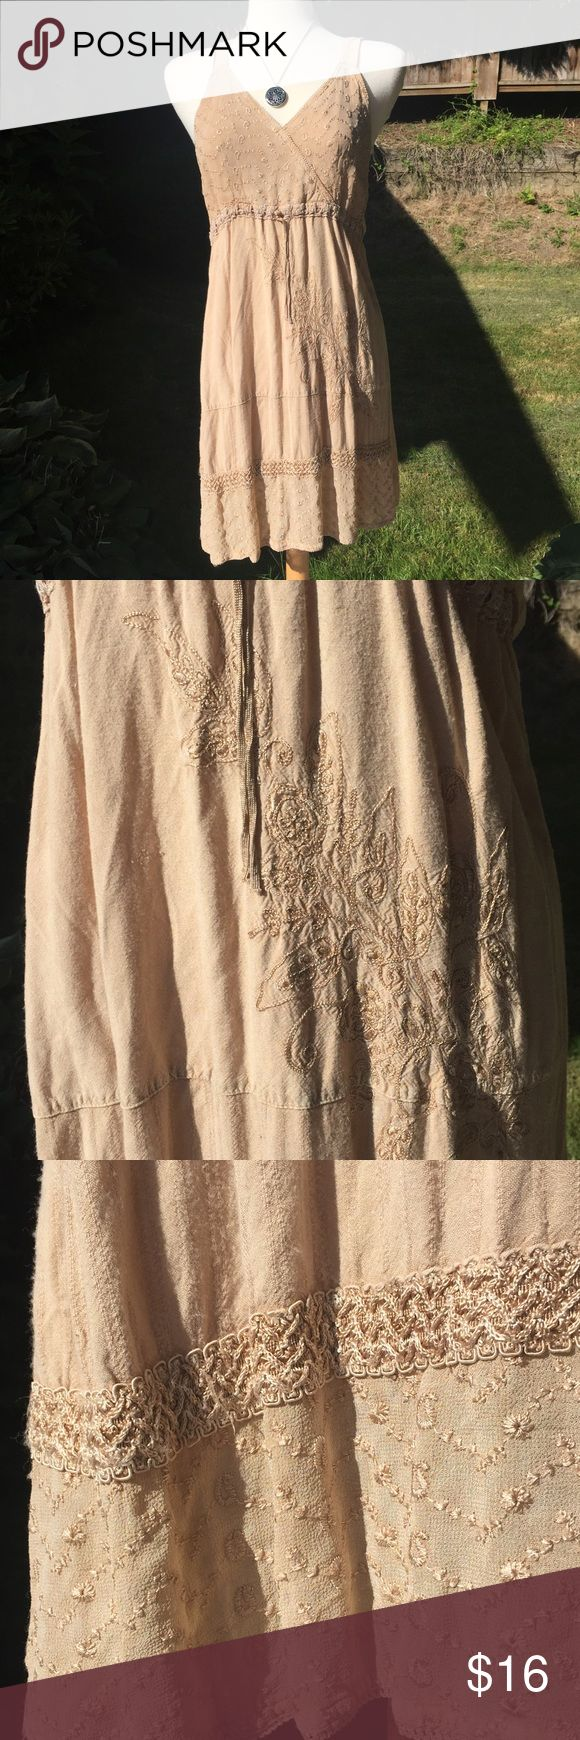 Adorable embroidered summer dress Beige embroidered summer dress, lightweight and cool. Featuring a drawstring waist, and really beautiful embroidered detailing. Size Small. Dresses Midi